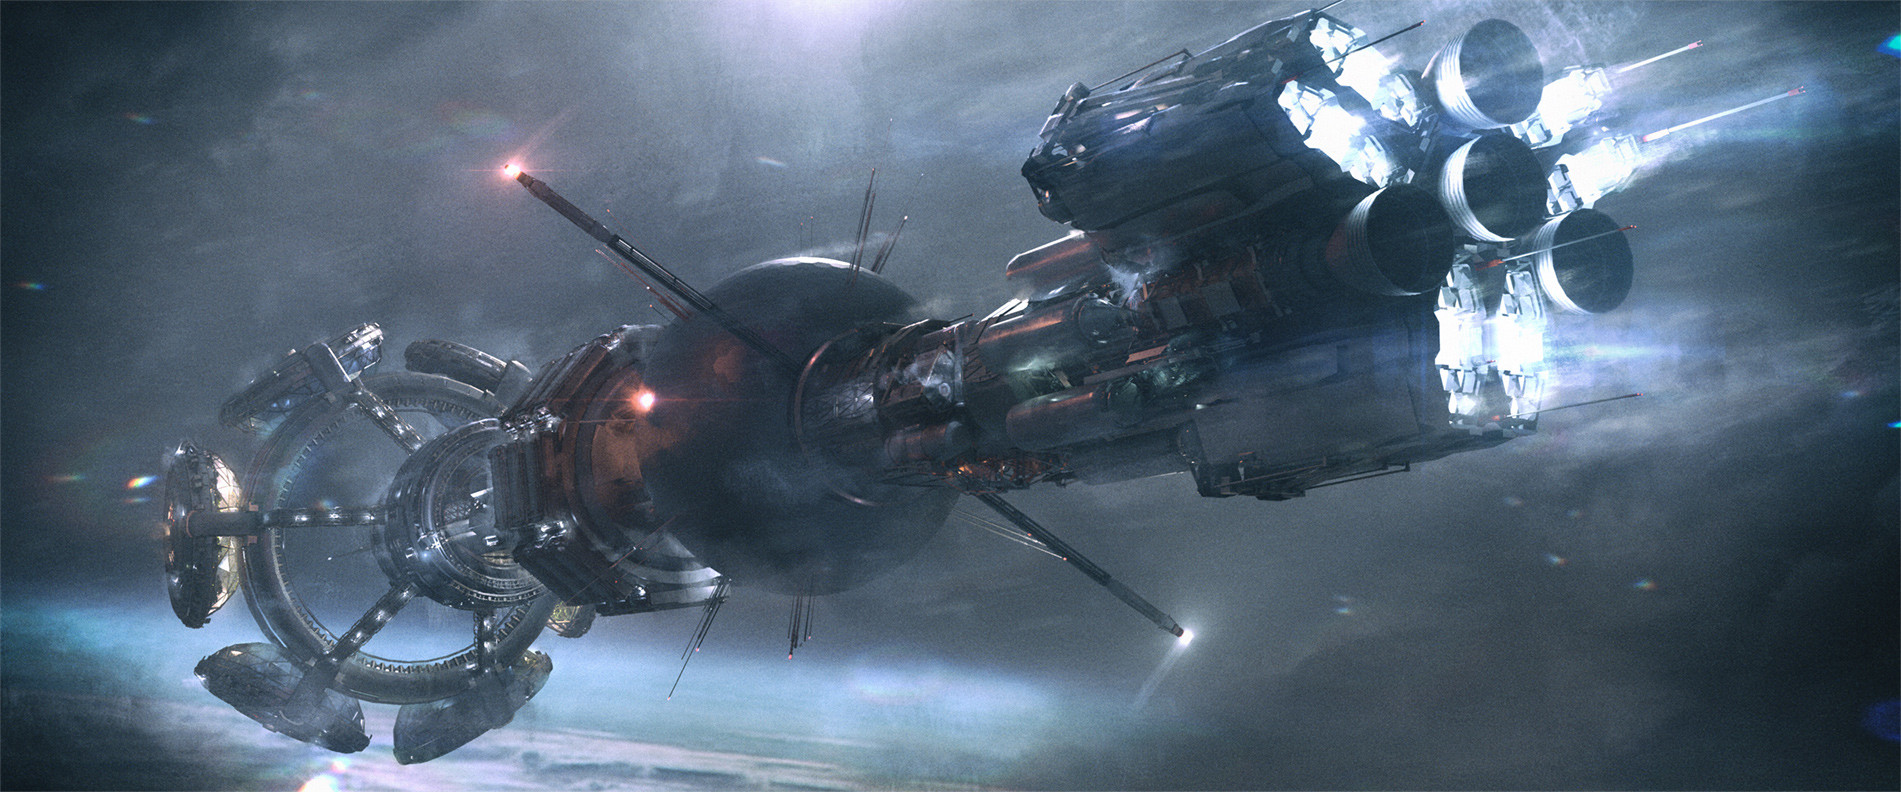 Initially the ship had a dark brooding look, eventually moved to a more white/satellite feel.